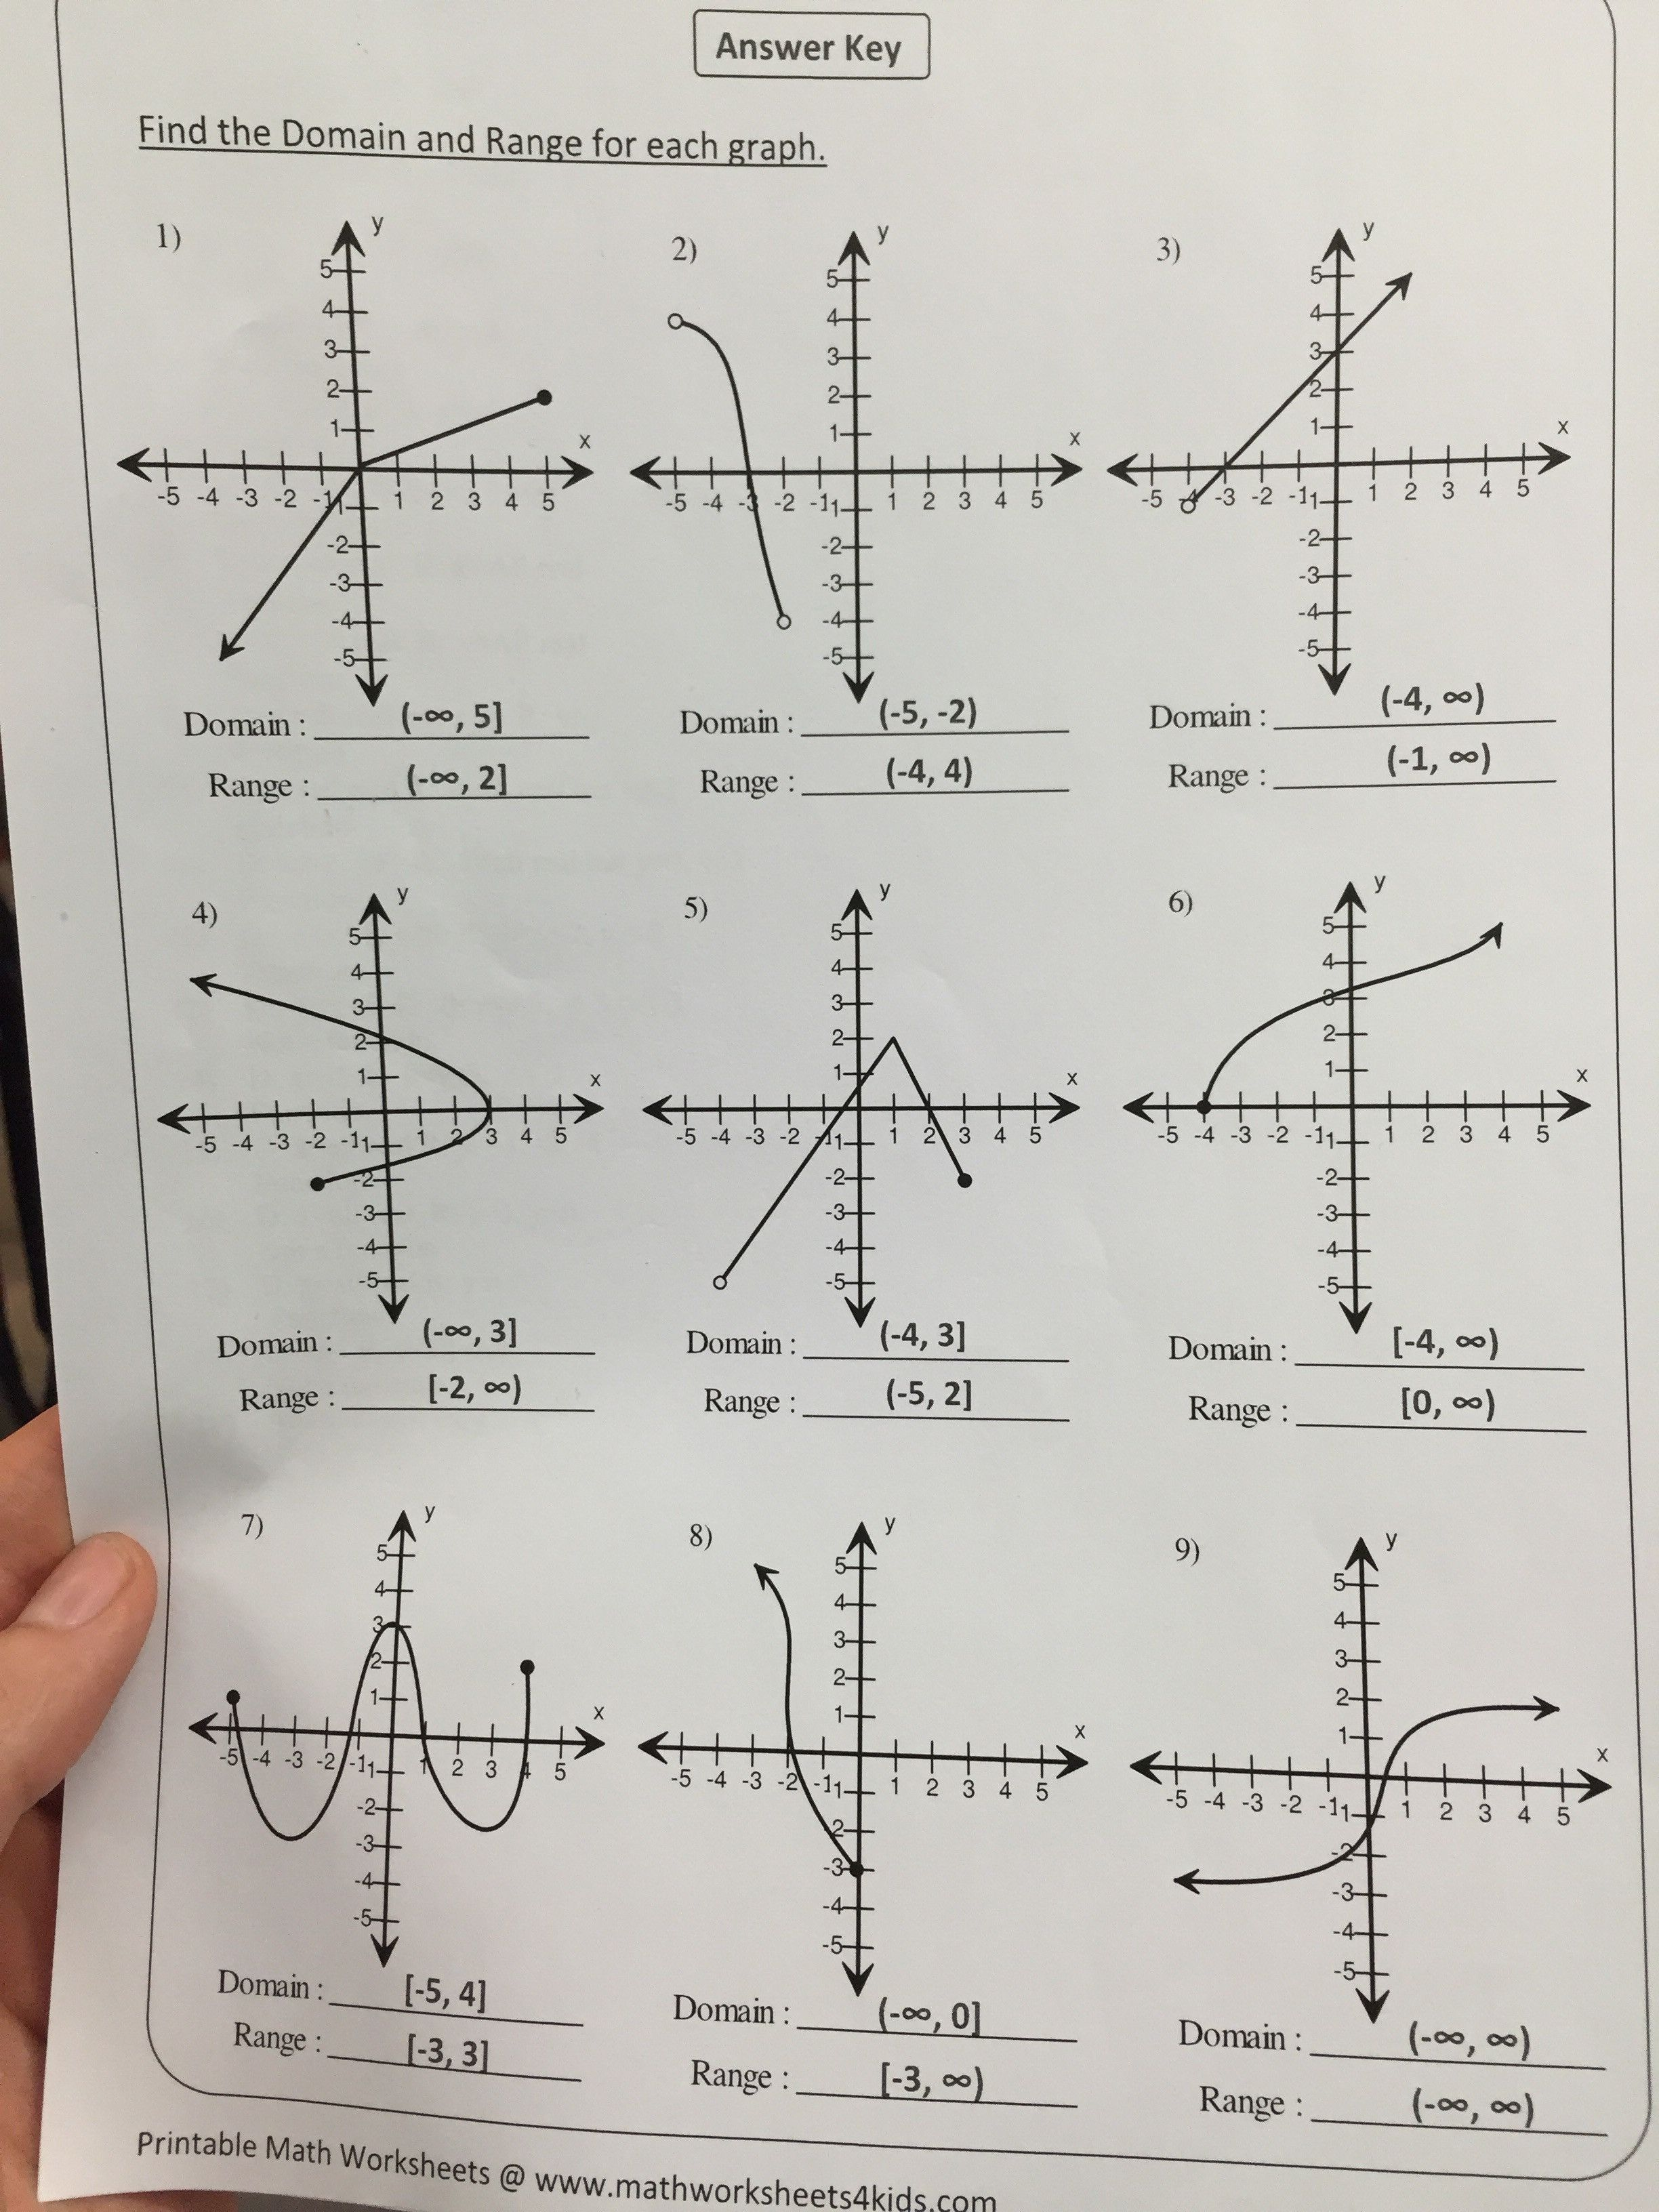 General Domain And Range Worksheet Algebra 1